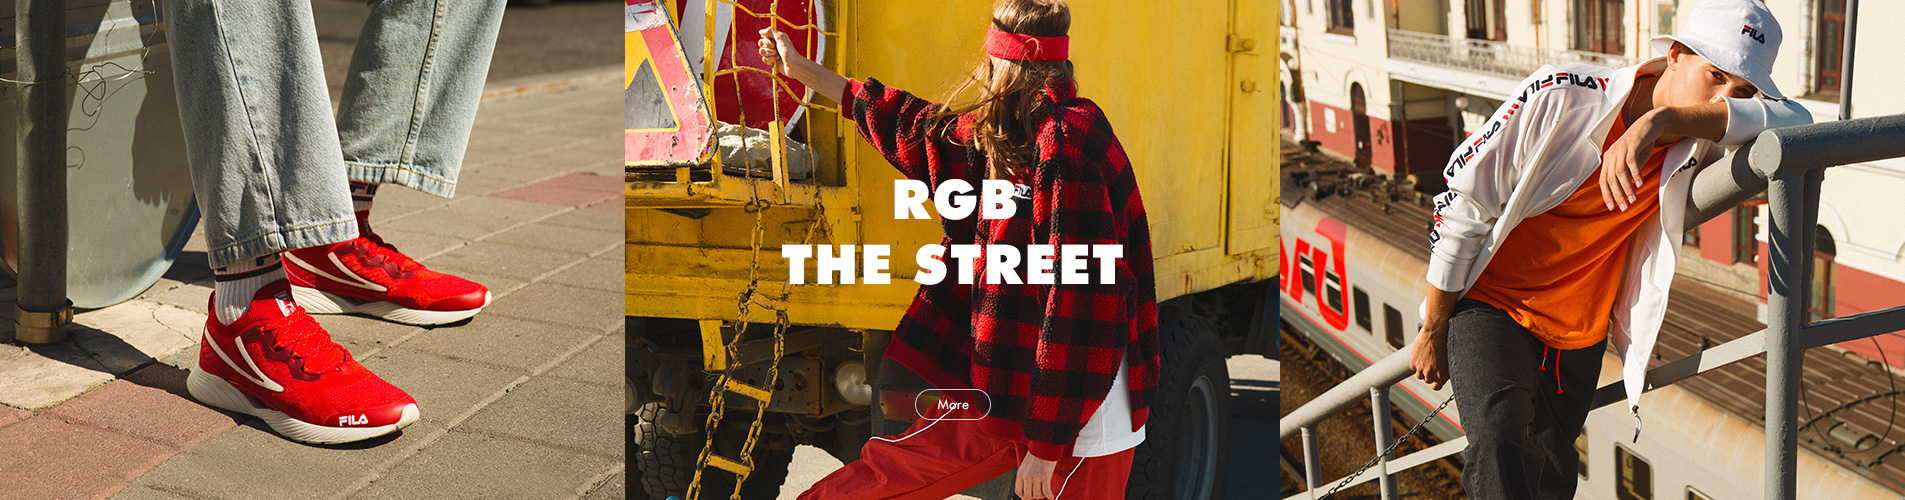 RGB : The Street mobile